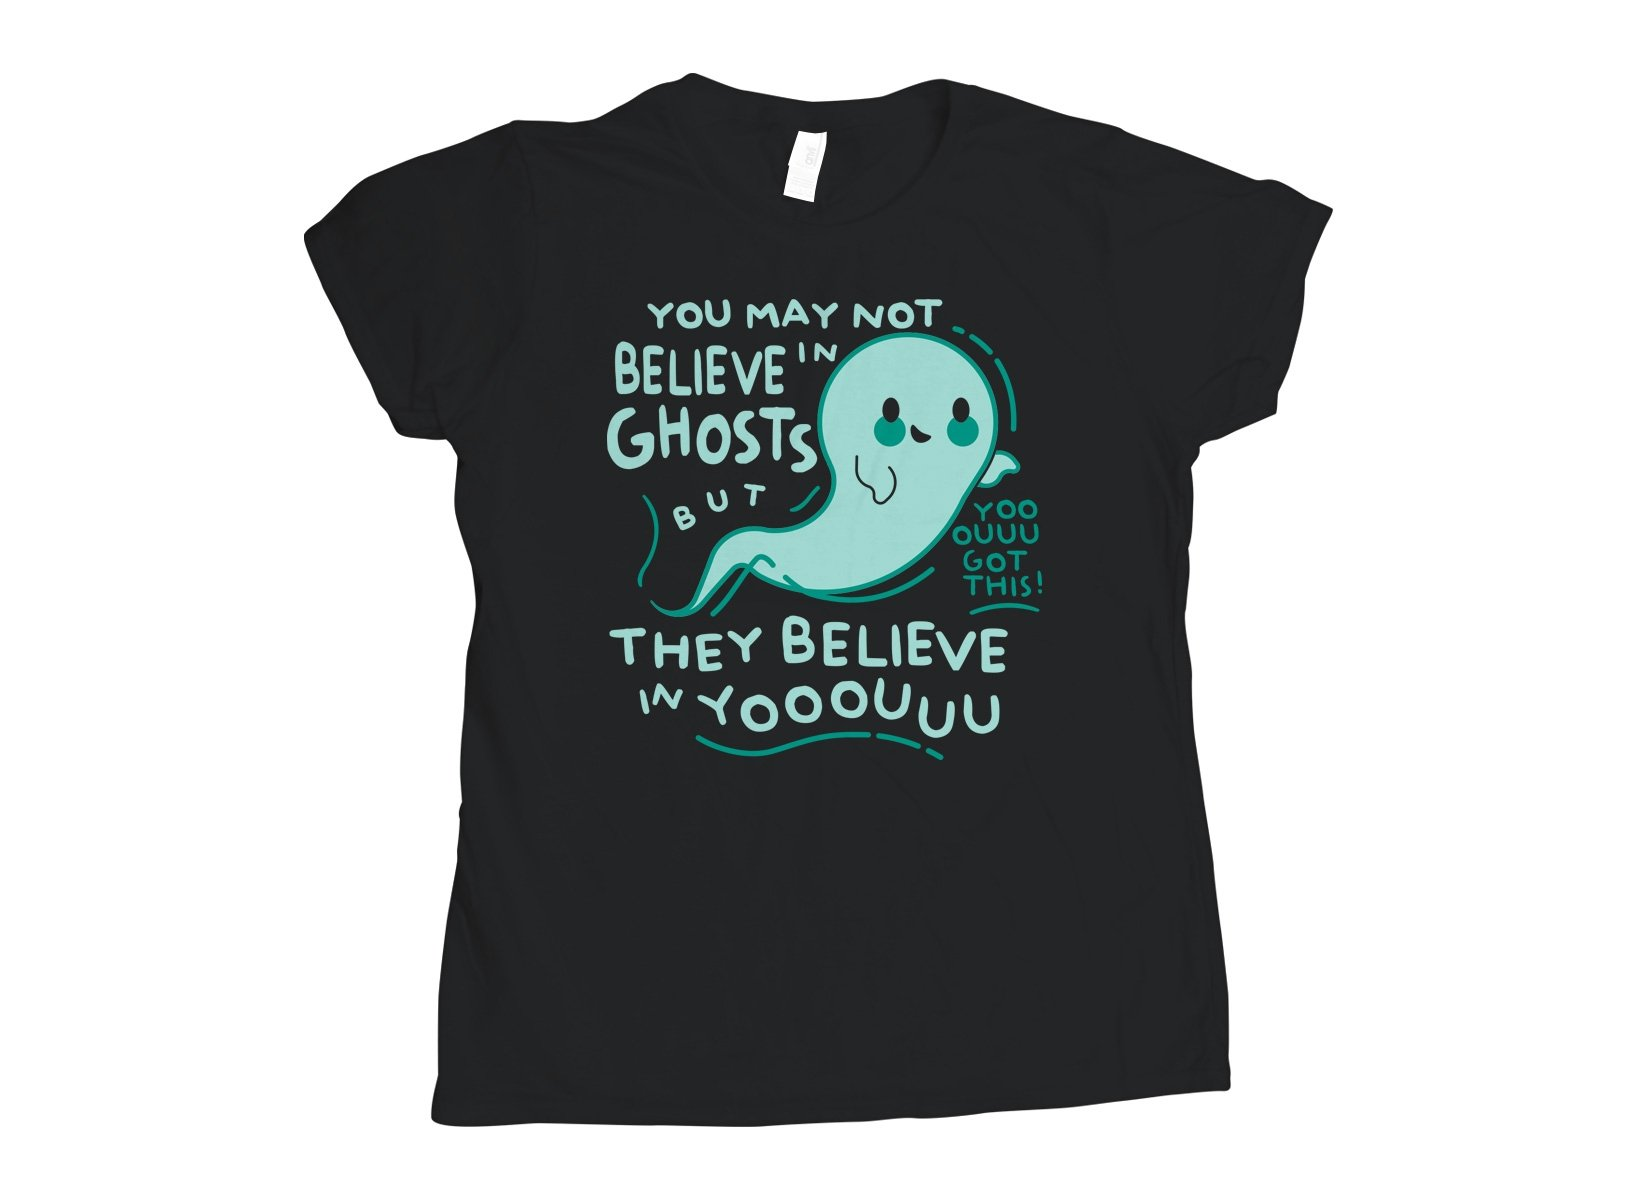 You May Not Believe In Ghosts on Womens T-Shirt